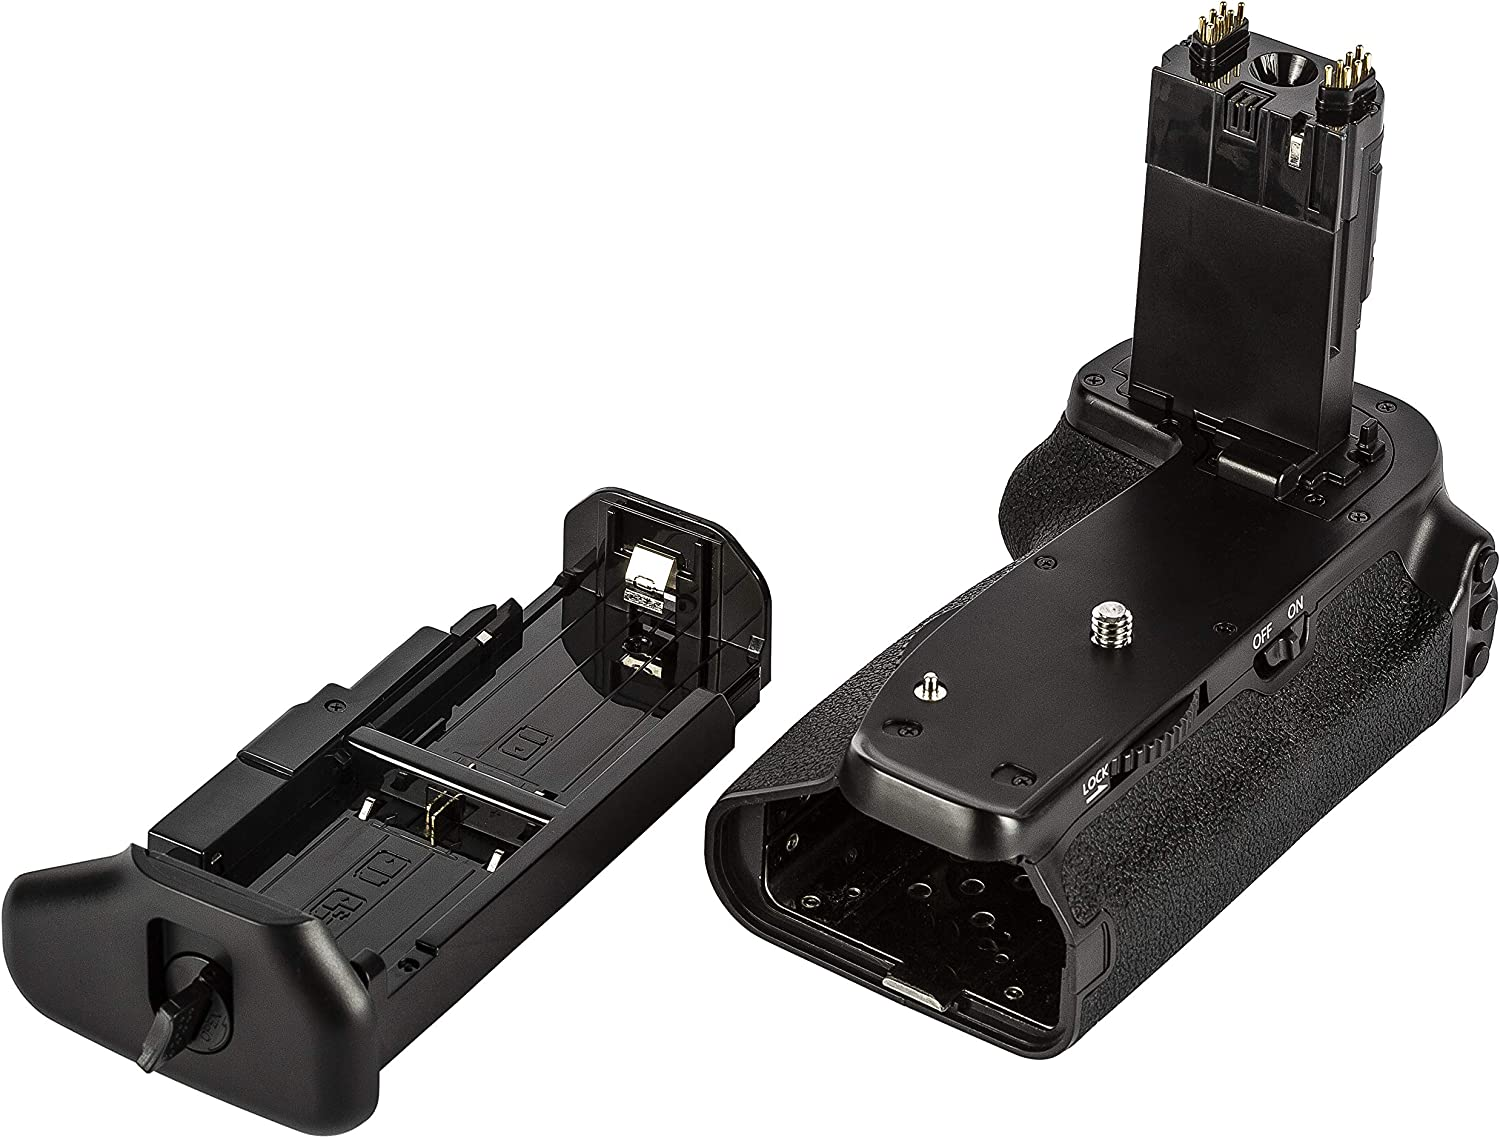 Replacement for BG-E21 Dynamic Battery Grip Holder Ultimaxx/'s Professional Compatible with Canon EOS 6D Mark II DSLR Camera; Works with LP-E6 or LP-E6N Batteries; Grip Only